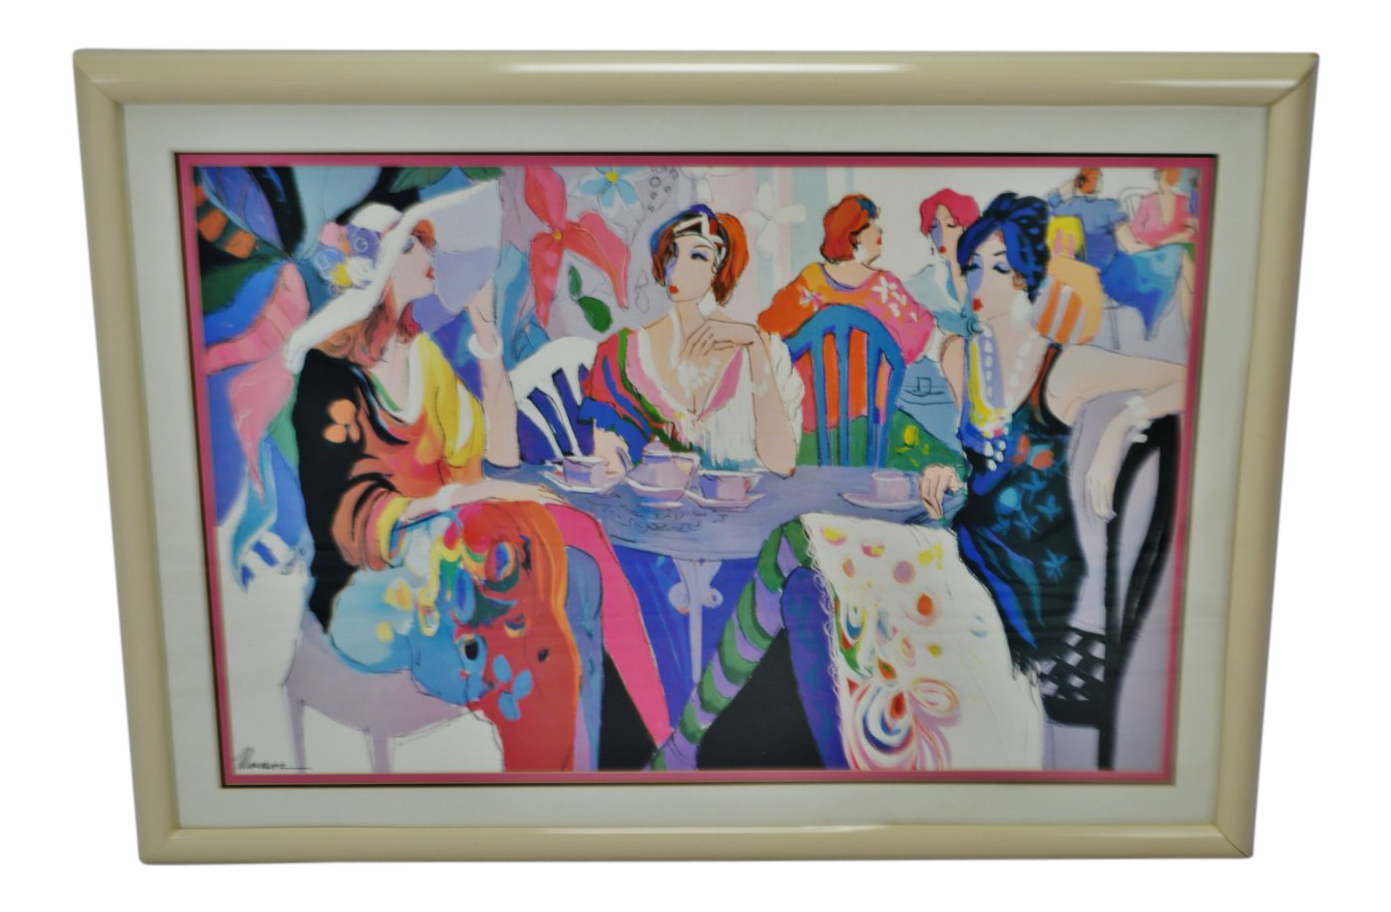 Sensual drawing framed. Vintage isaac maimon deco